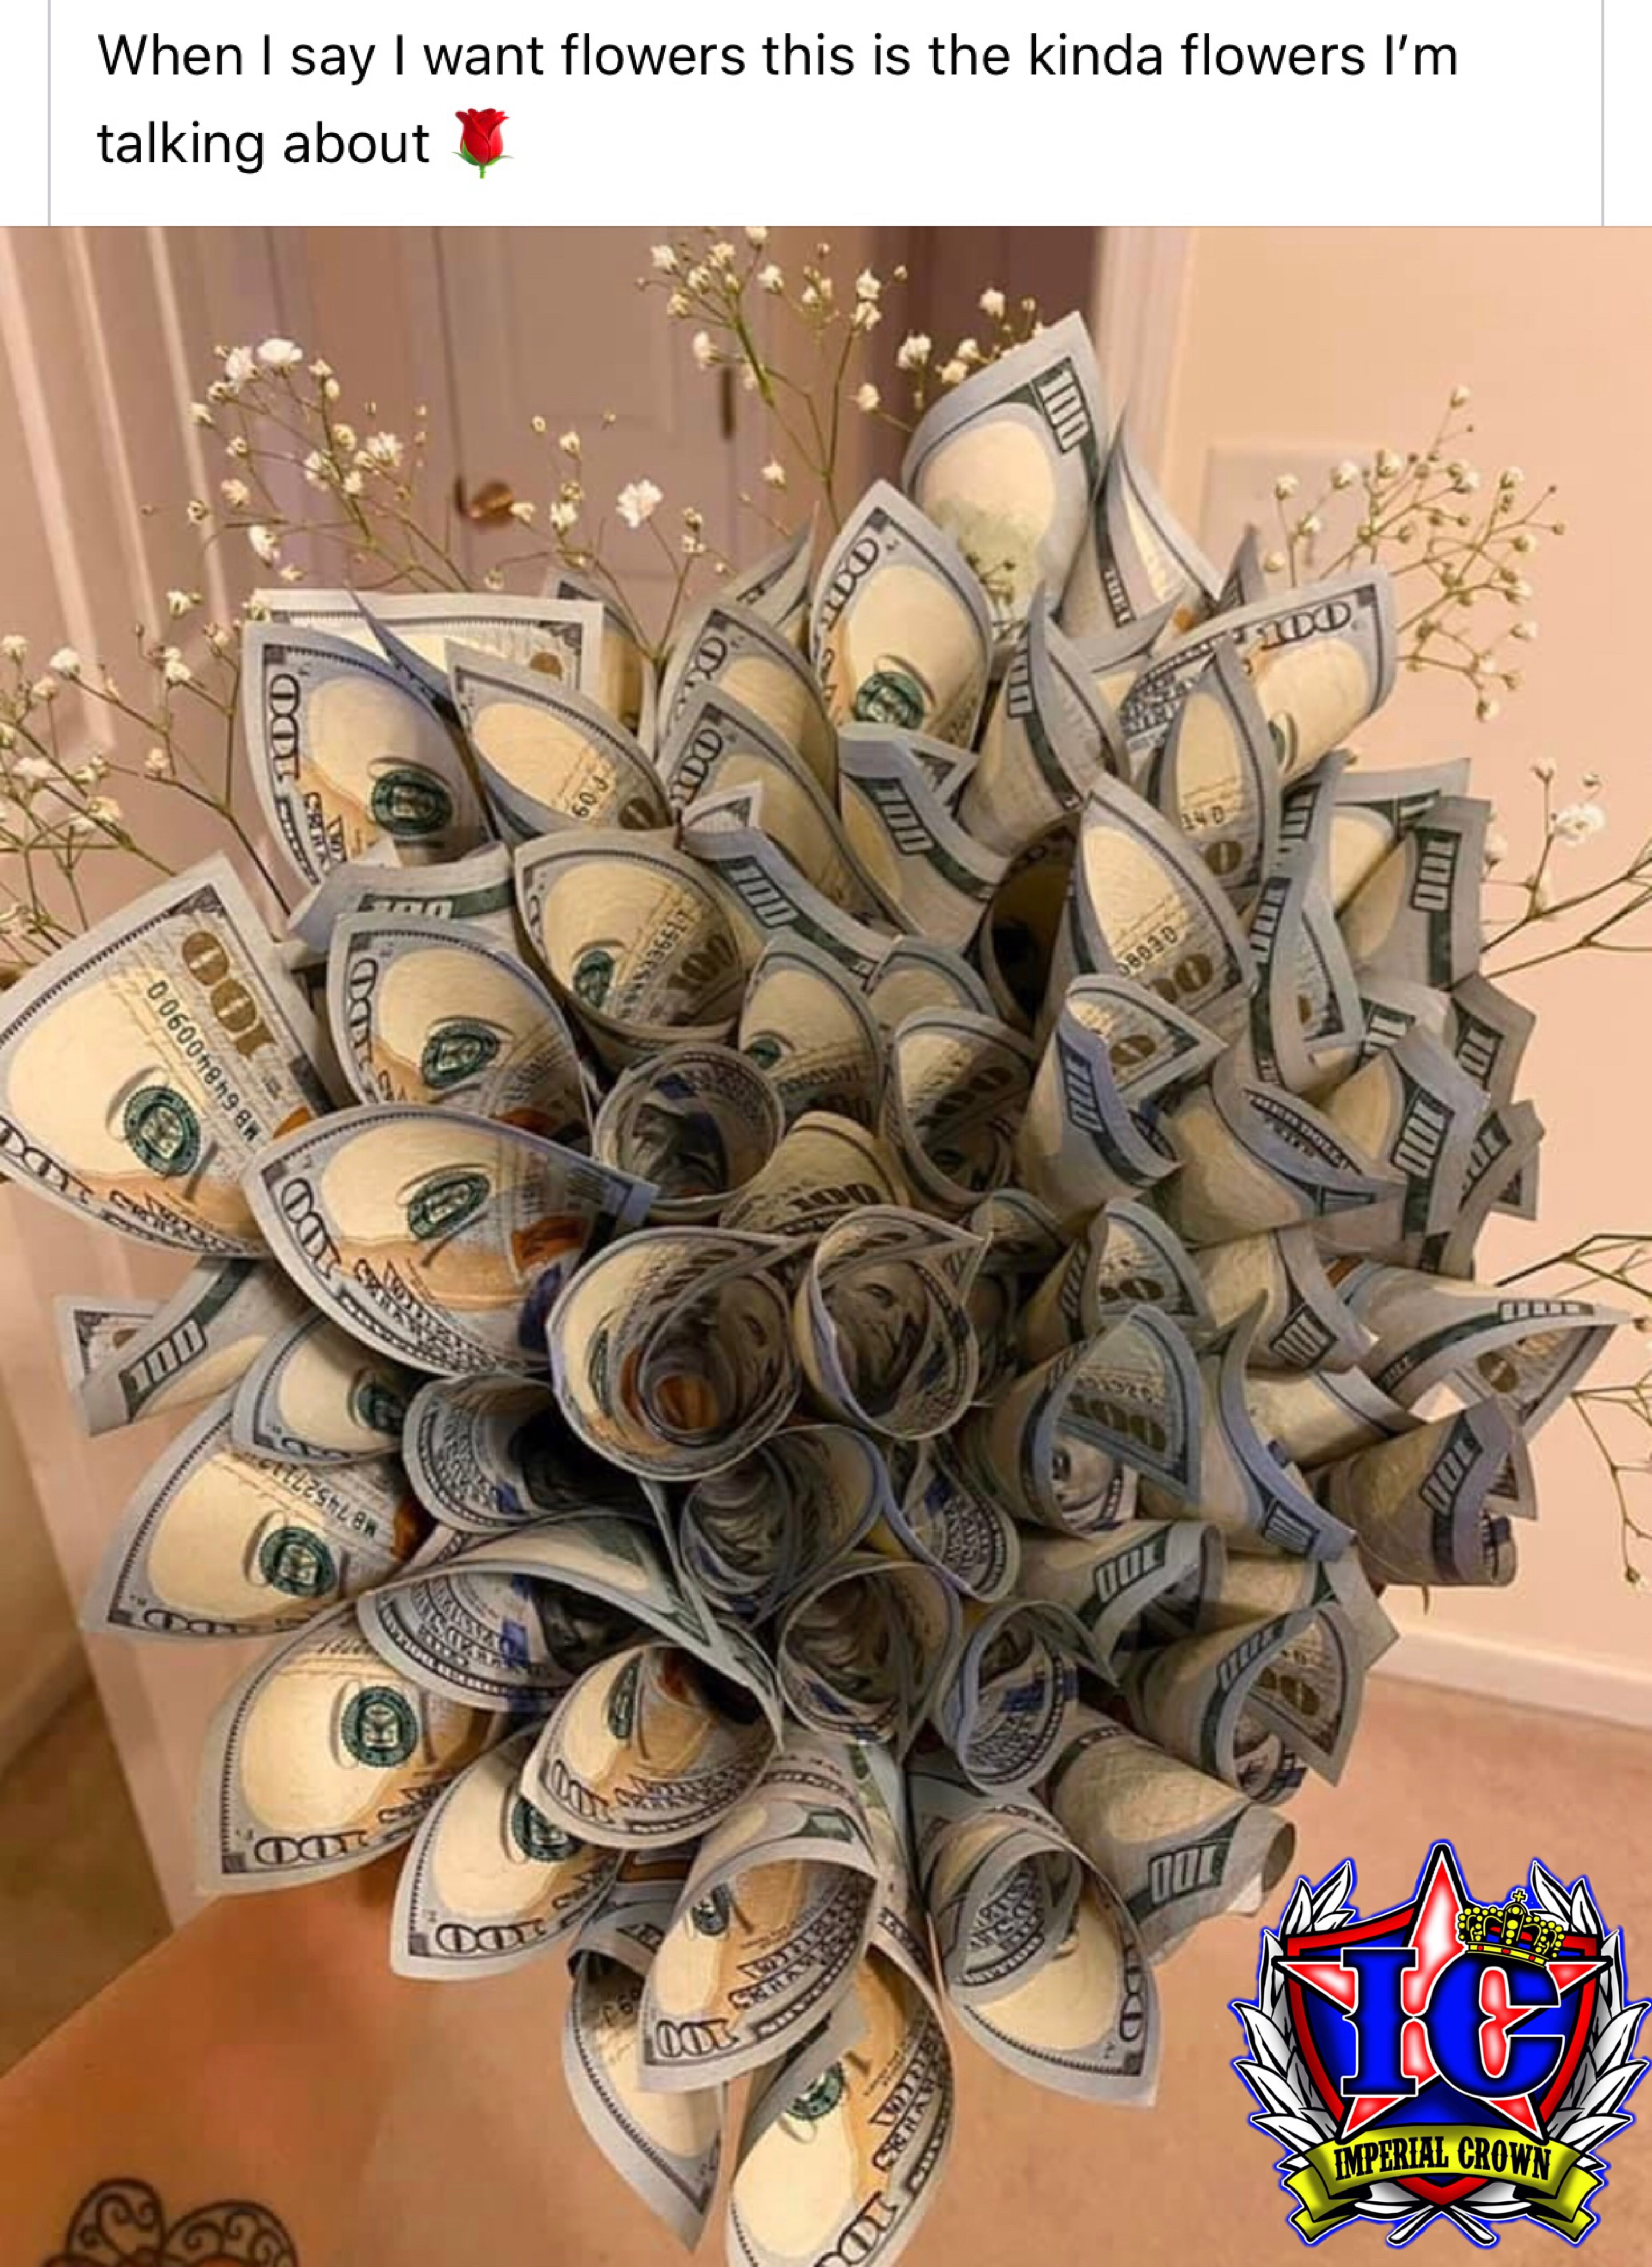 When I say I want flowers this is the kinda flowers I'm talking about